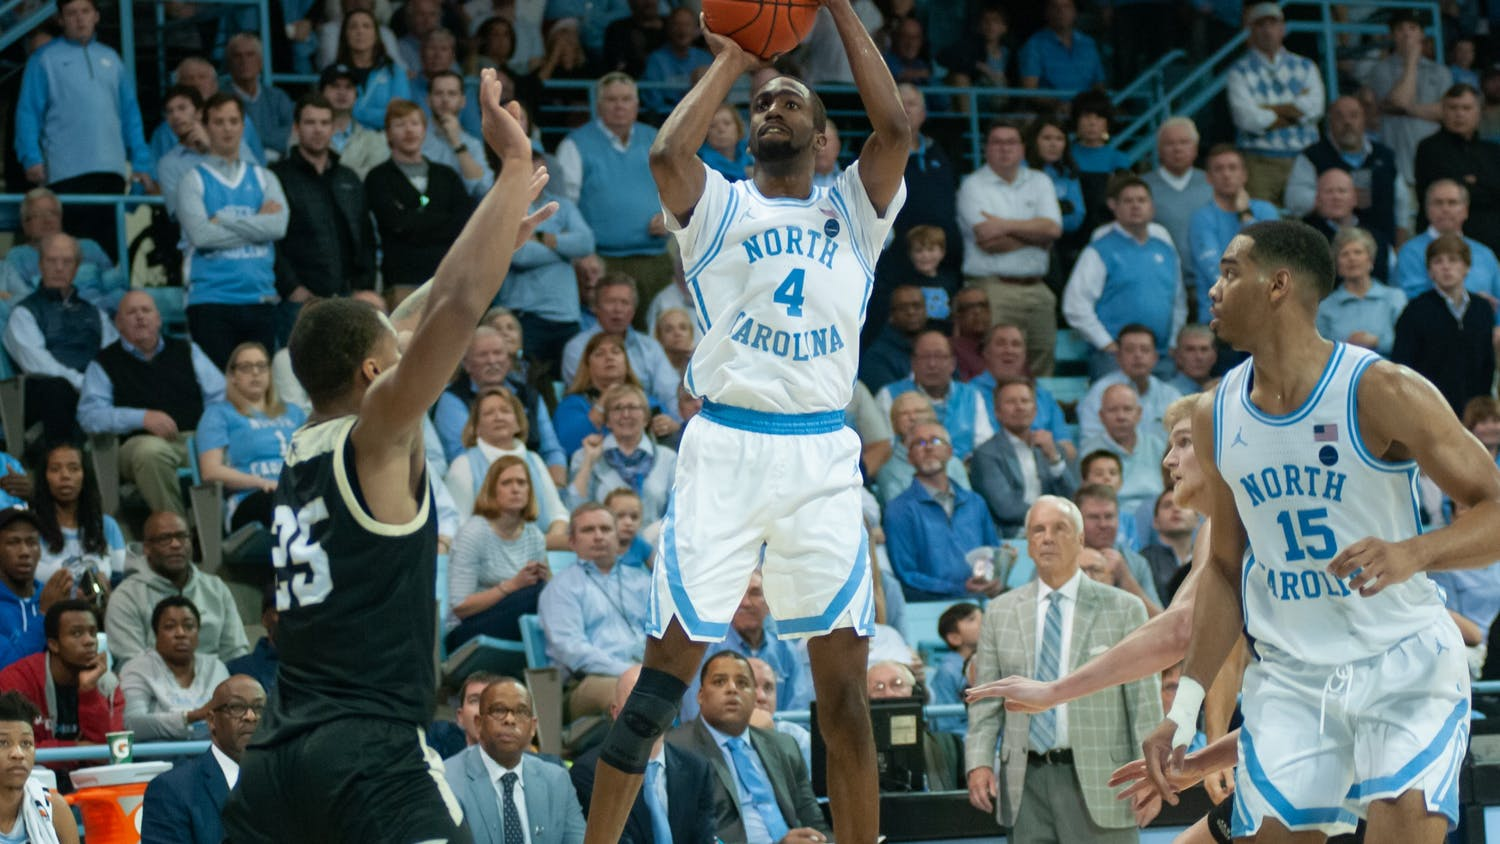 UNC's senior guard Brandon Robinson (4) attempts to shoot while junior forward Garrison Brooks (15) looks on during a game against Wofford on Sunday, Dec. 15th, 2019 at Carmichael Arena. This is the first regular-season game the Tar Heels have played in Carmichael since 1986. UNC fell to Wofford 64-68, marking UNC's third consecutive loss.